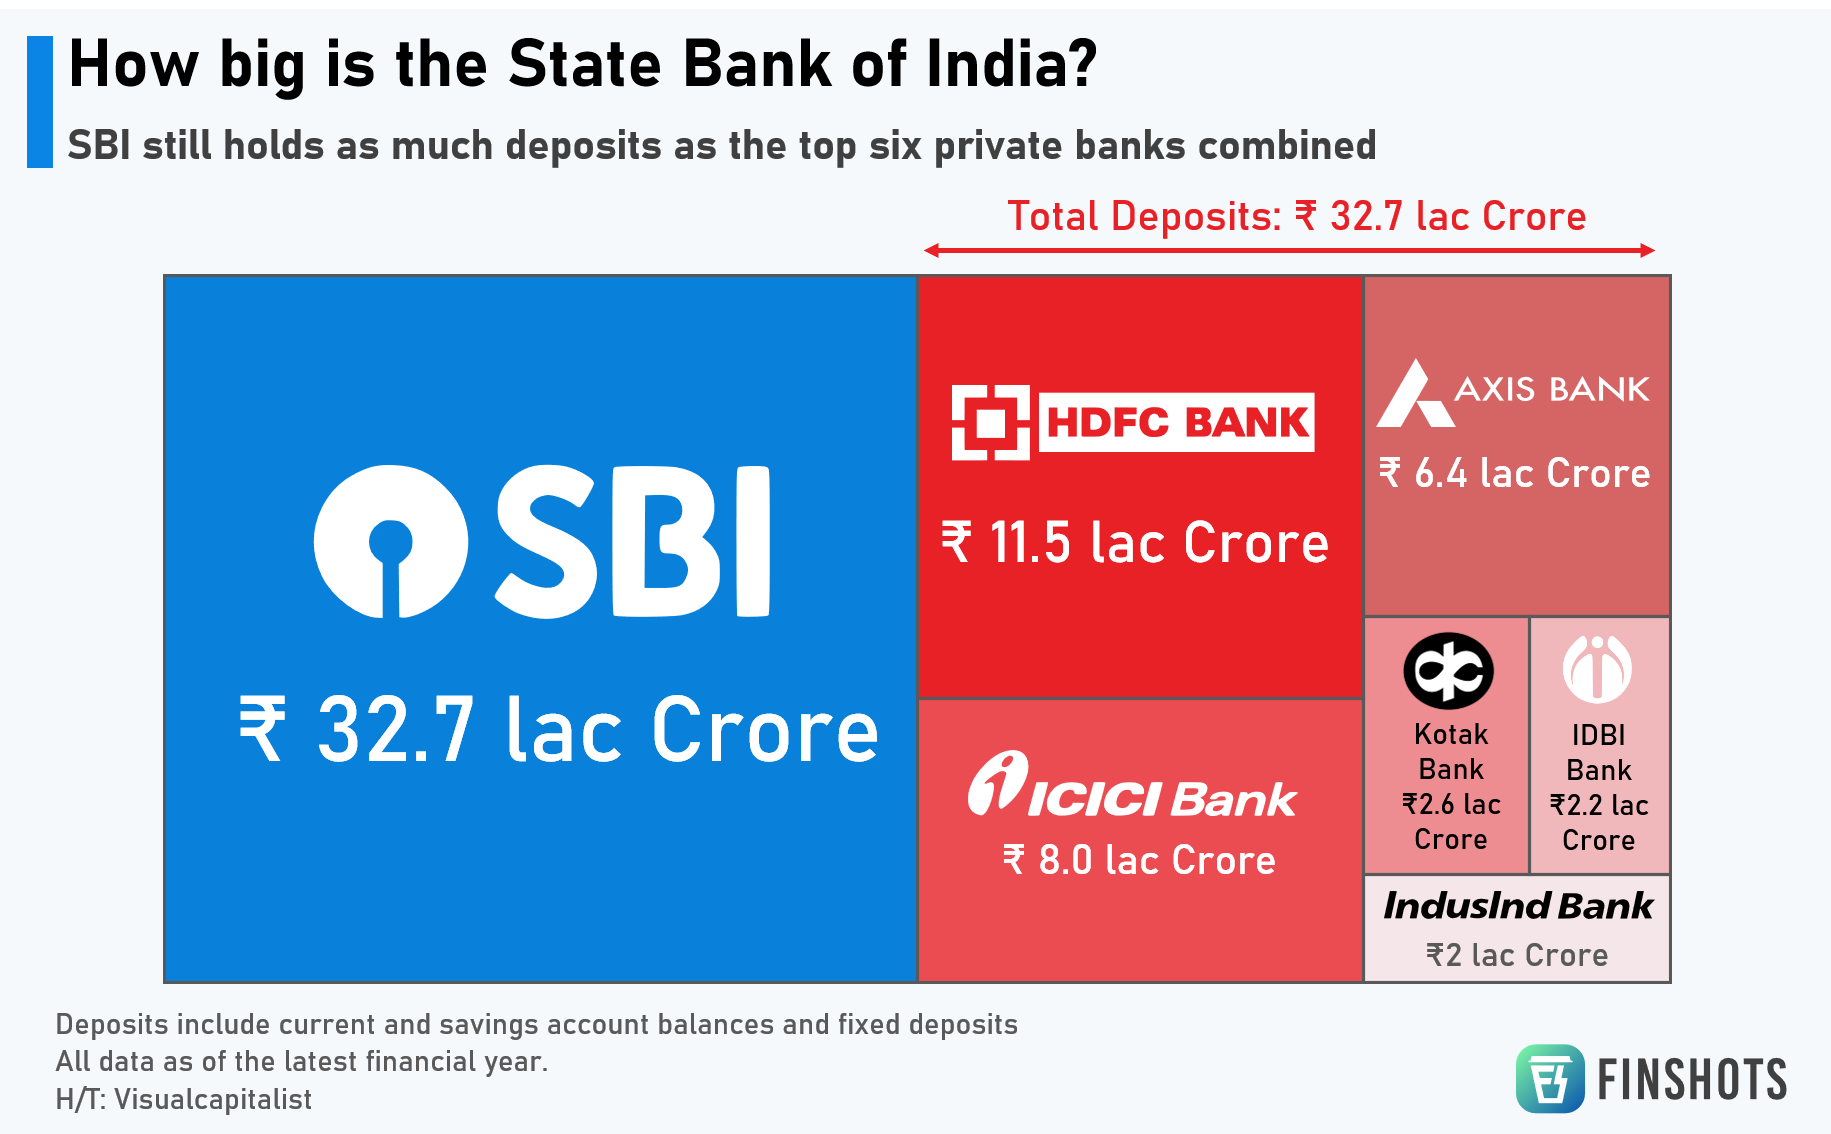 How big is State Bank of India?